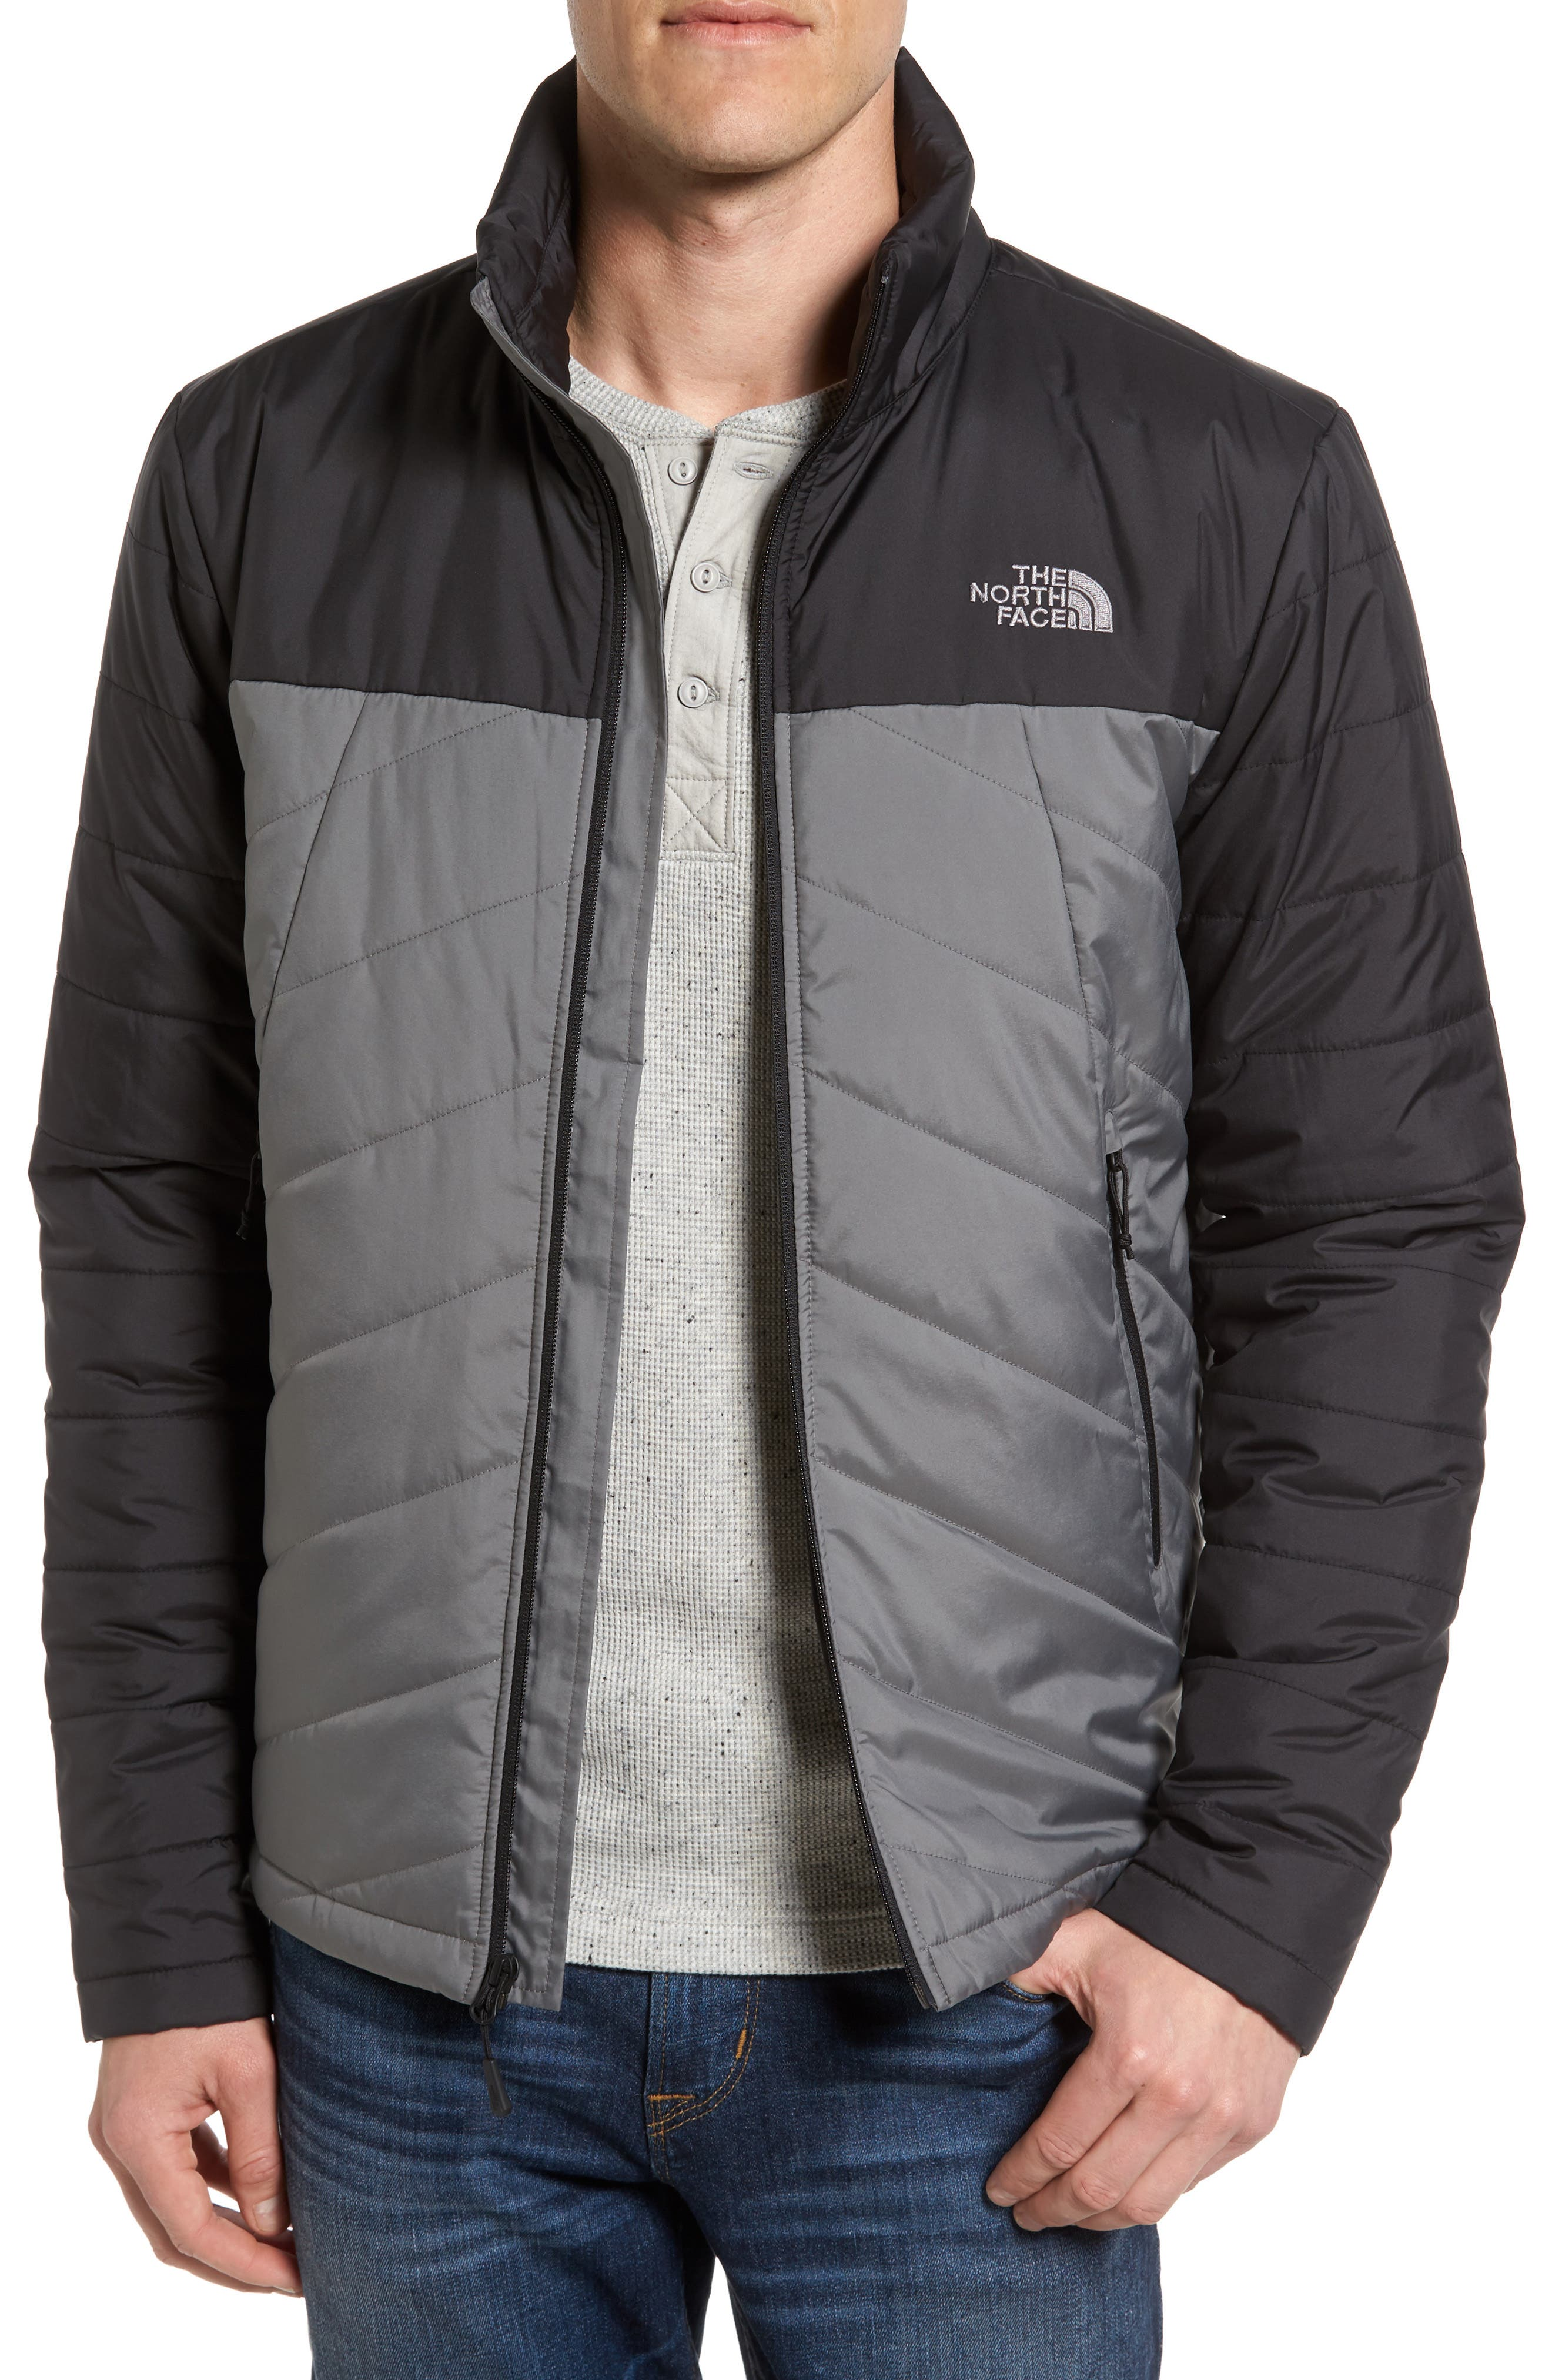 The North Face Saxony Heatseeker Water Repellent Jacket